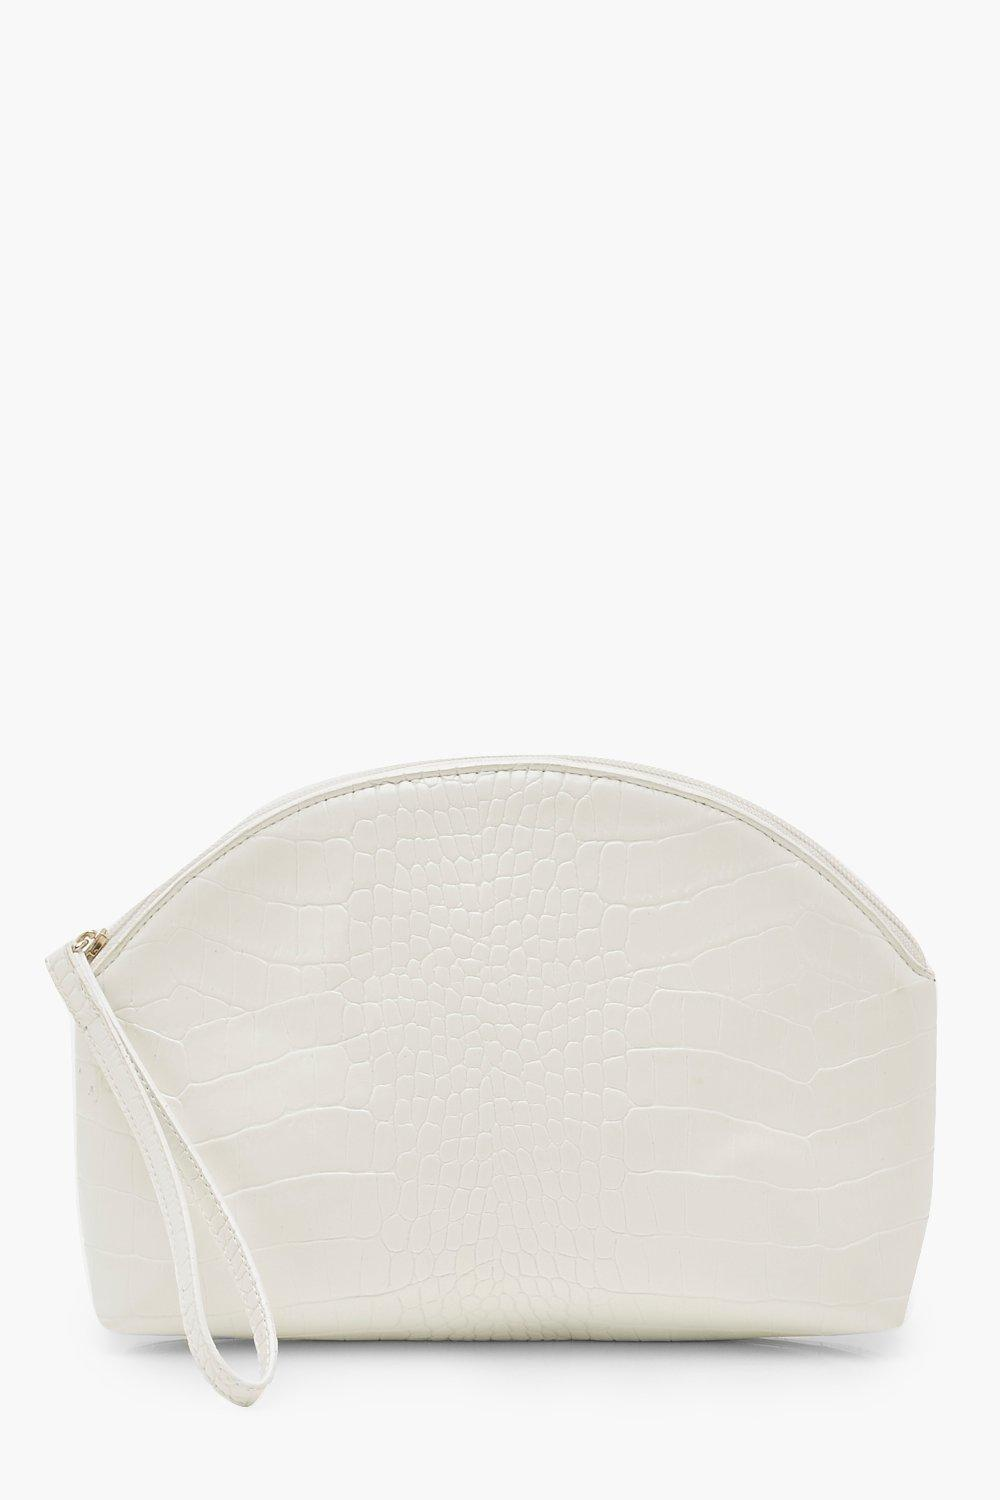 boohoo Womens Croc Half Moon Zip Top Pouch & Handle Bag - White - One Size, White